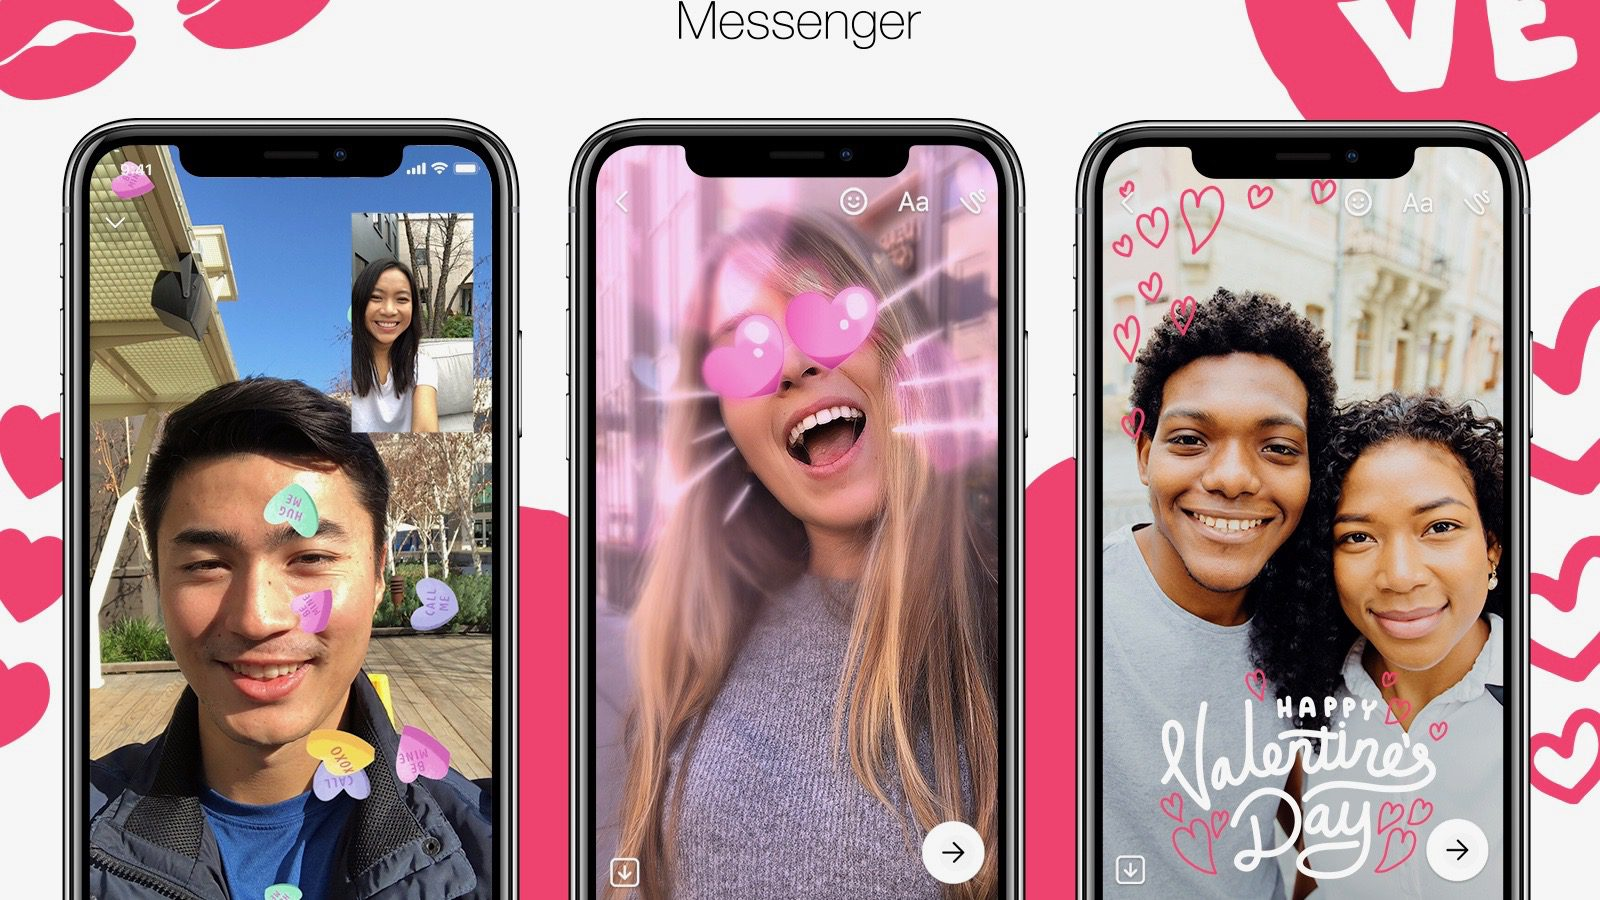 Facebook announces new Messenger features to help couples 'feel the love' this Valentine's Day facebook-announces-new-messenger-features-to-help-couples-feel-the-love-this-valentines-day